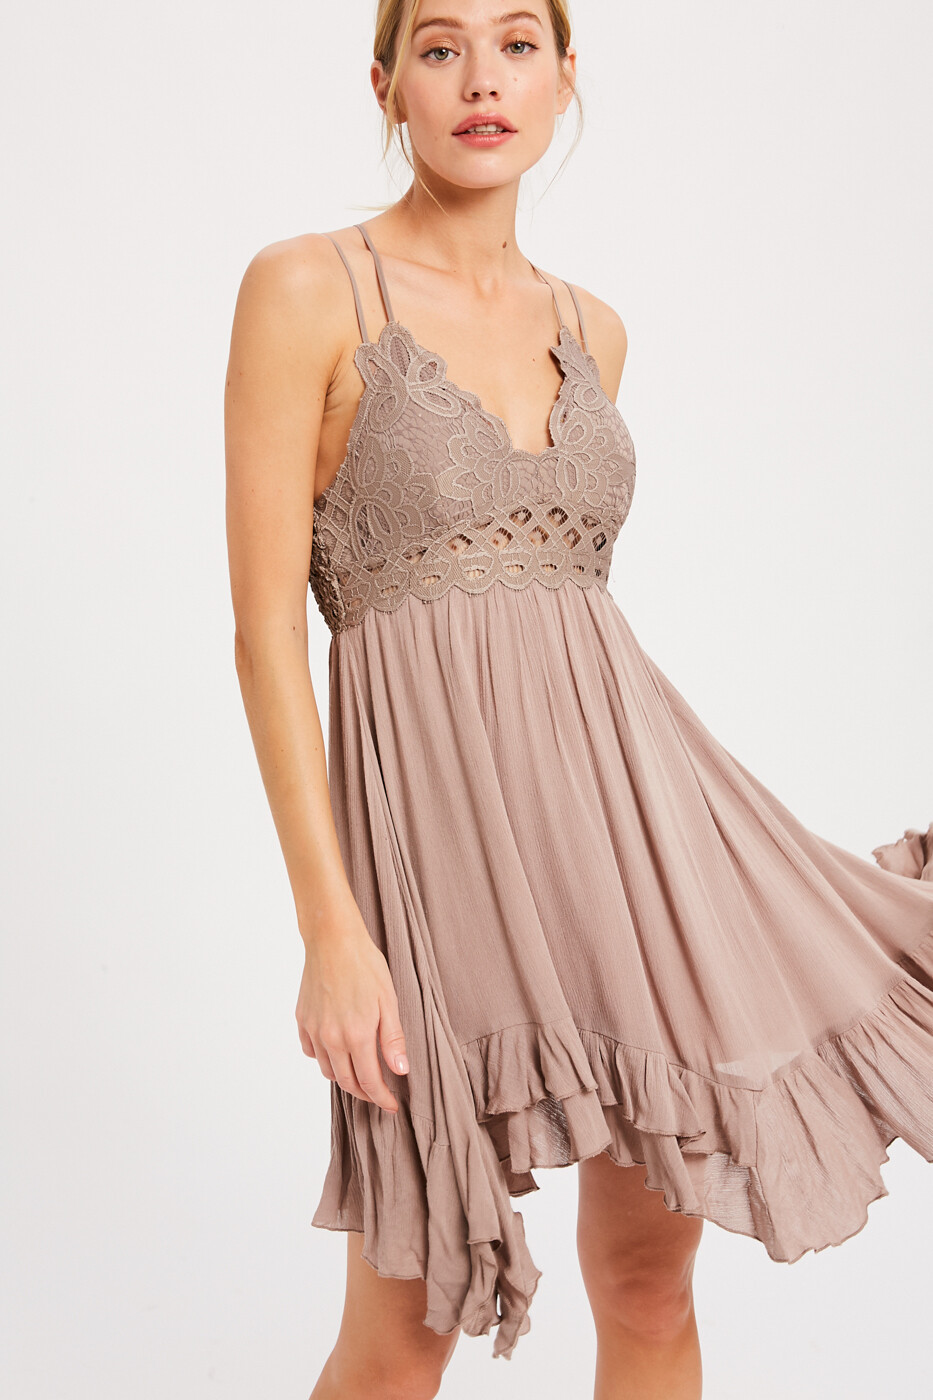 Cocoa Baby Doll Short Dress w/Bralette Top